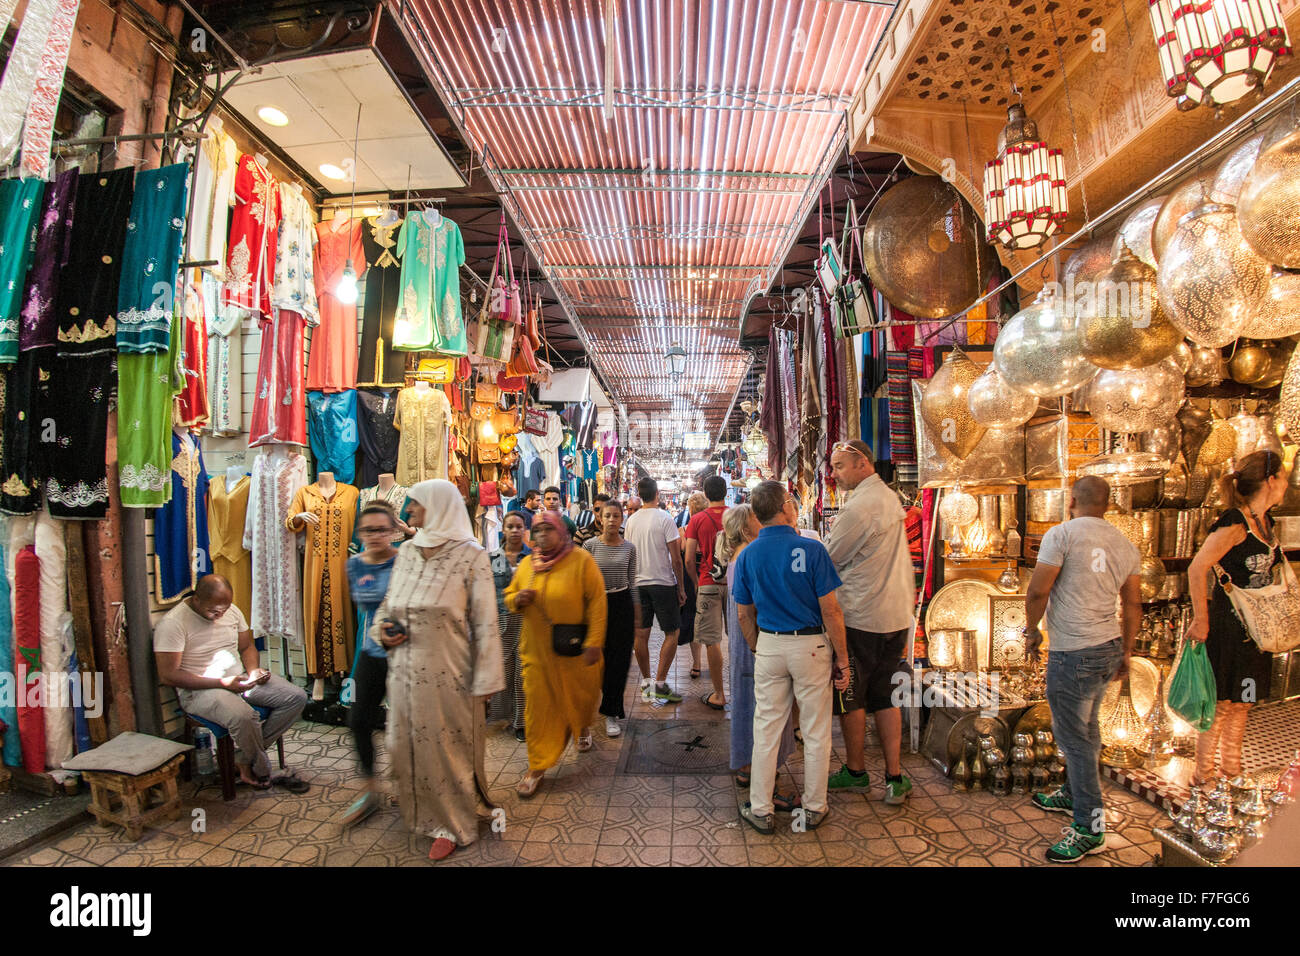 The souk in Marrakech, Morocco. - Stock Image